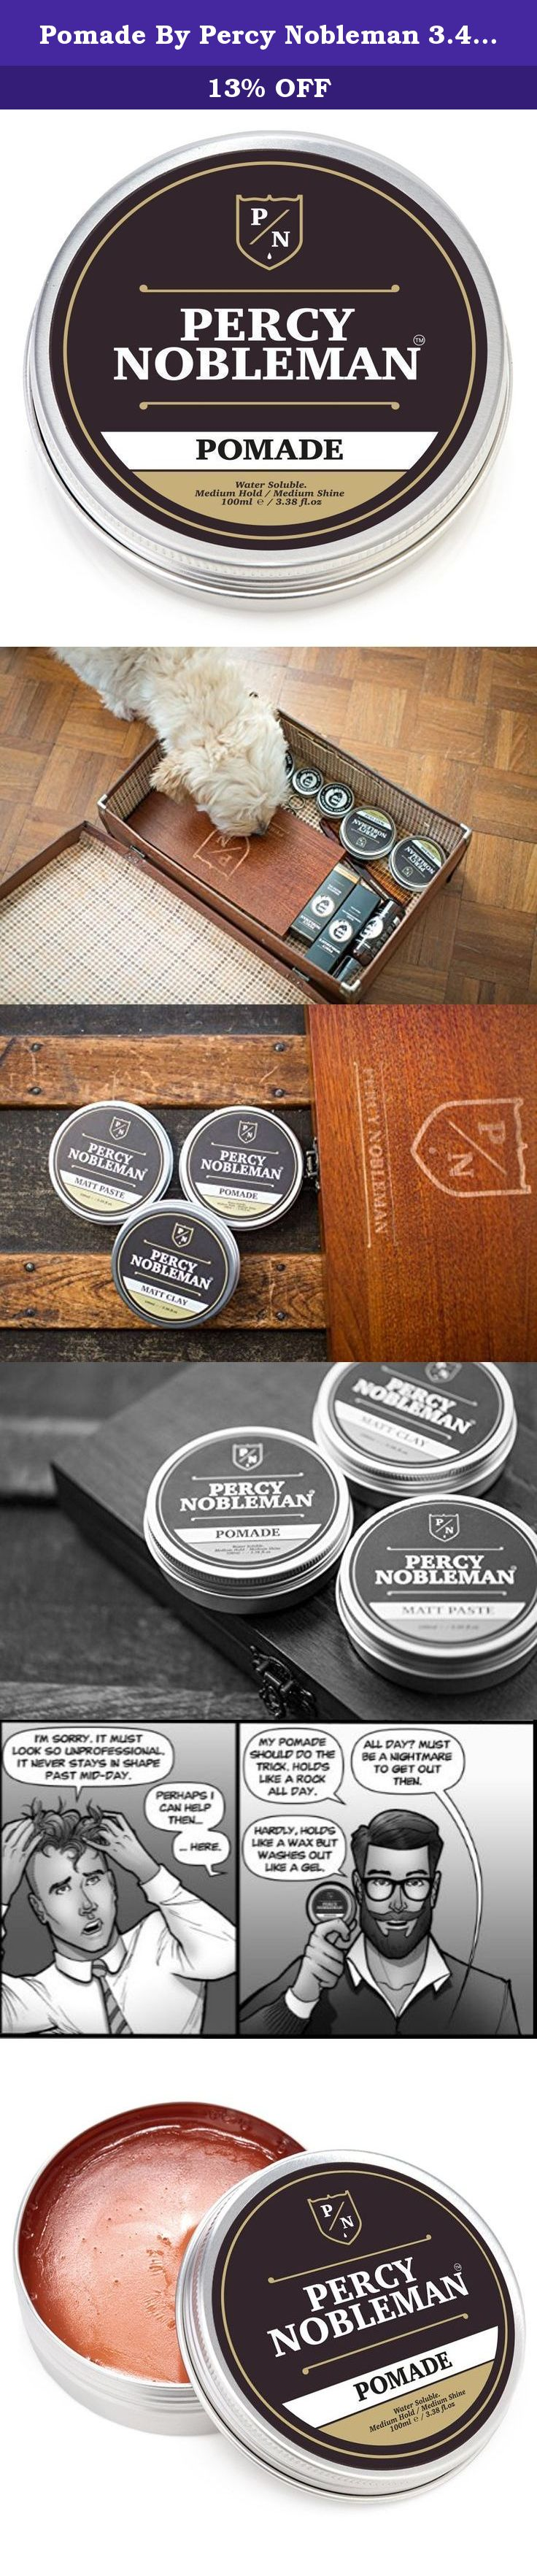 Pomade By Percy Nobleman  Ounce A British Male Grooming Brand